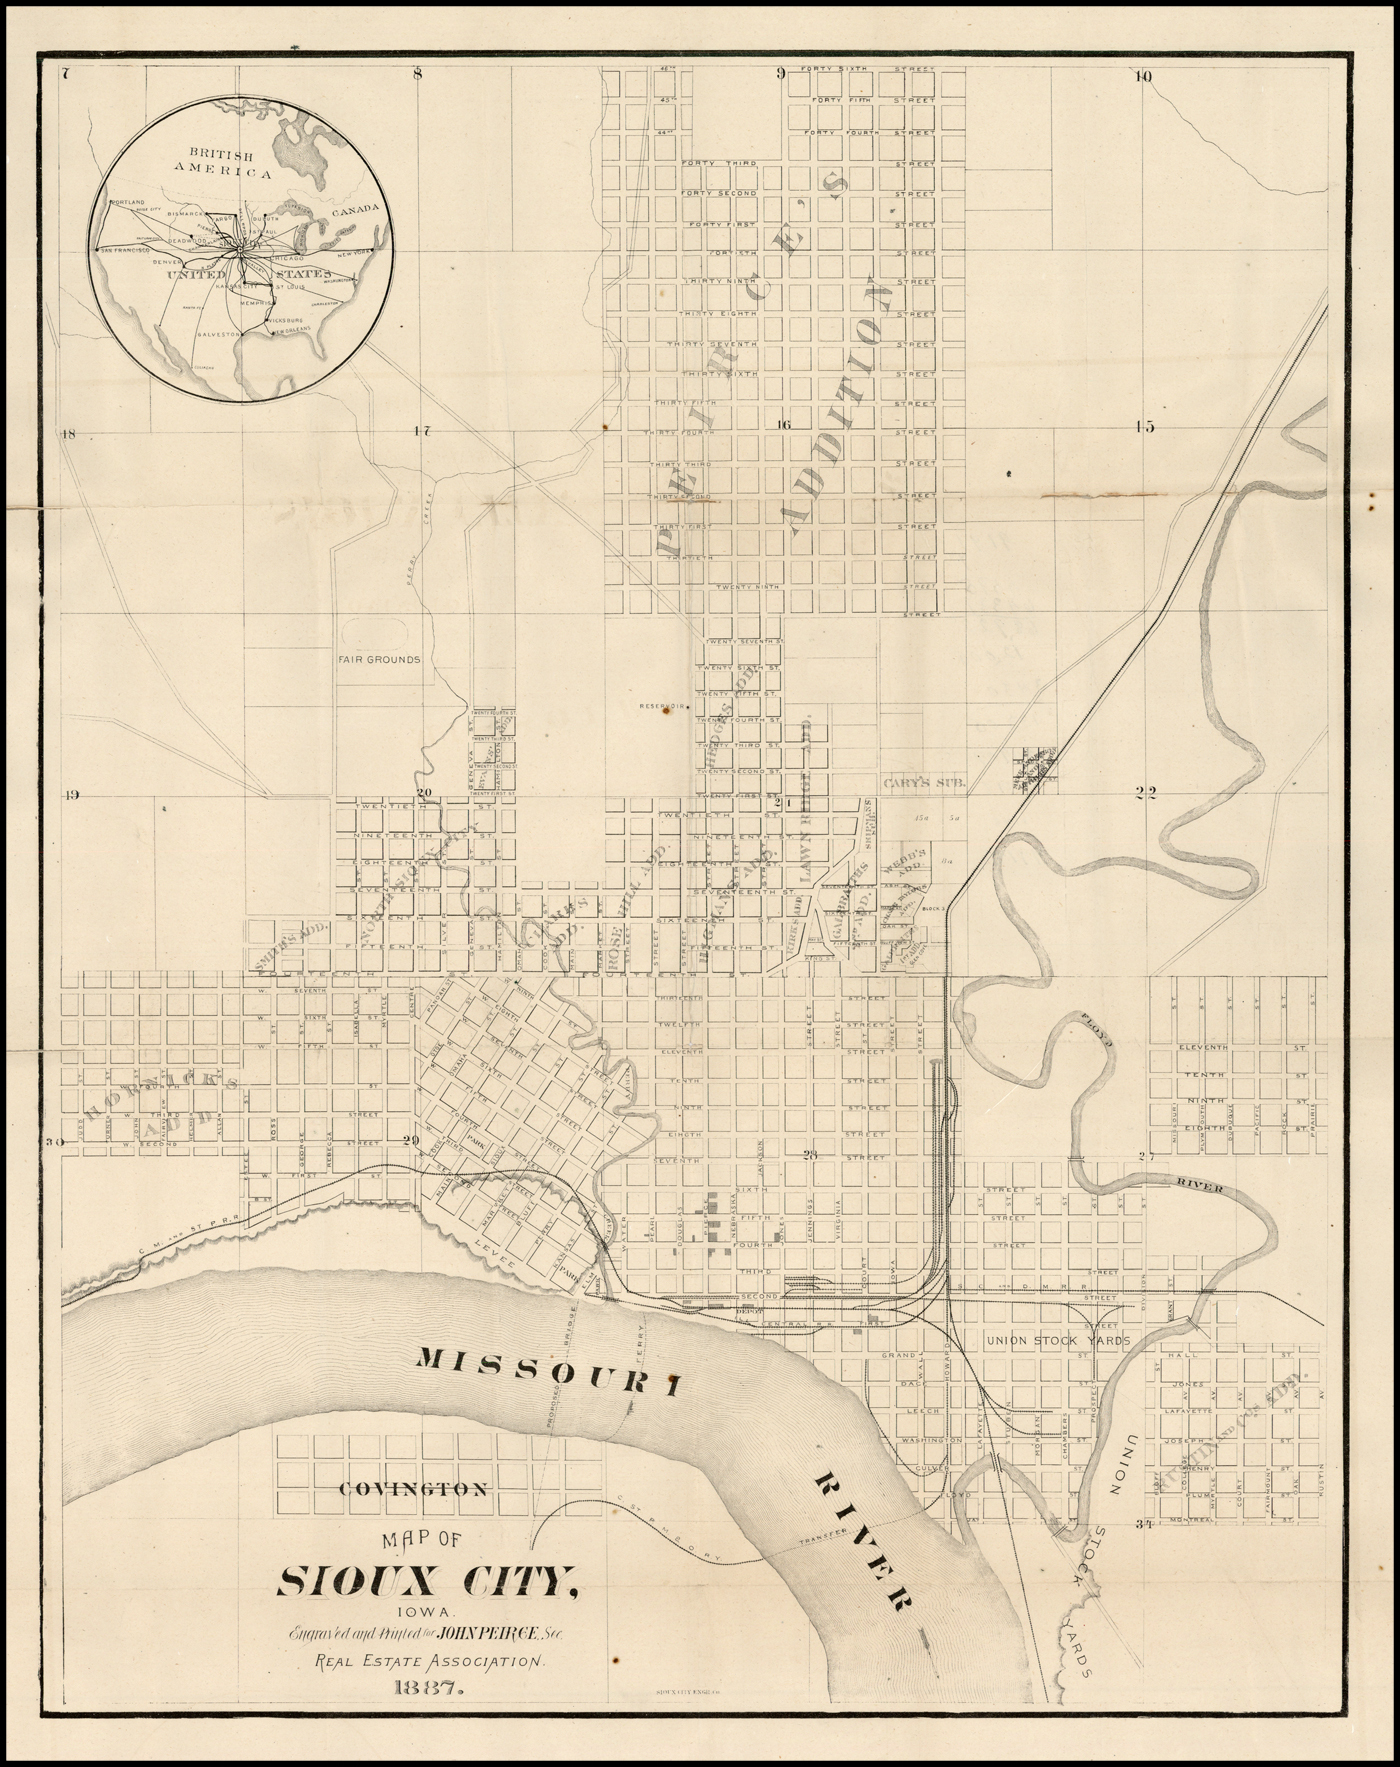 Map of Sioux City Iowa Engraved and Printed for John Peirce